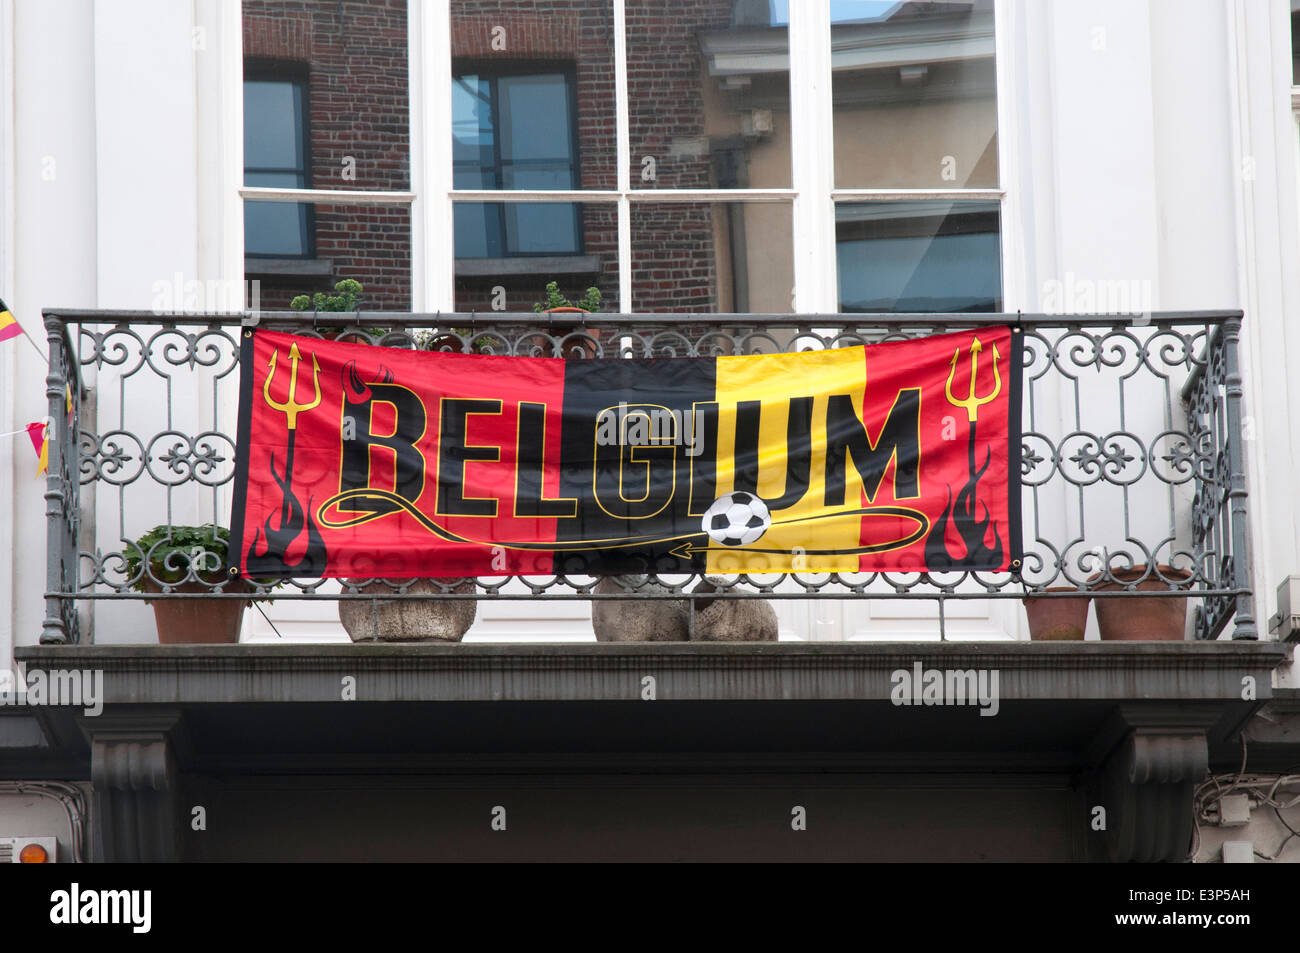 Fans of the Belgian Red Devils hang banners from the balconies of Ghent, ahead of World Cup 2014 matches - Stock Image